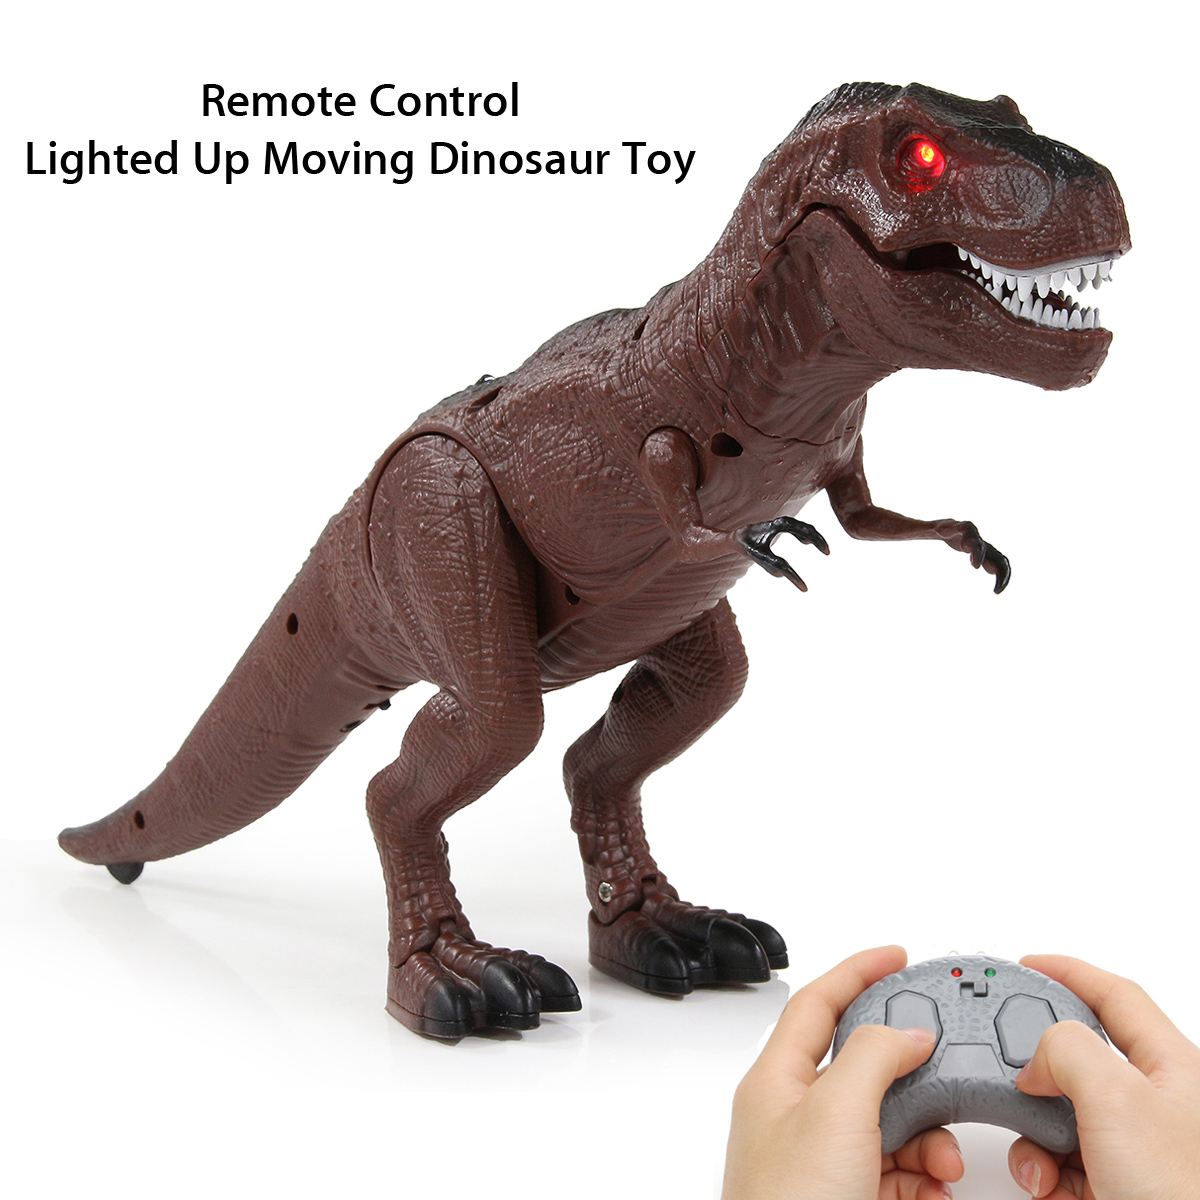 Battery Operated Remote Control Walking Toy Dinosaur Figure w/ Shaking Head, Walking Movement, Light Up Eyes and Sounds Kids Gift